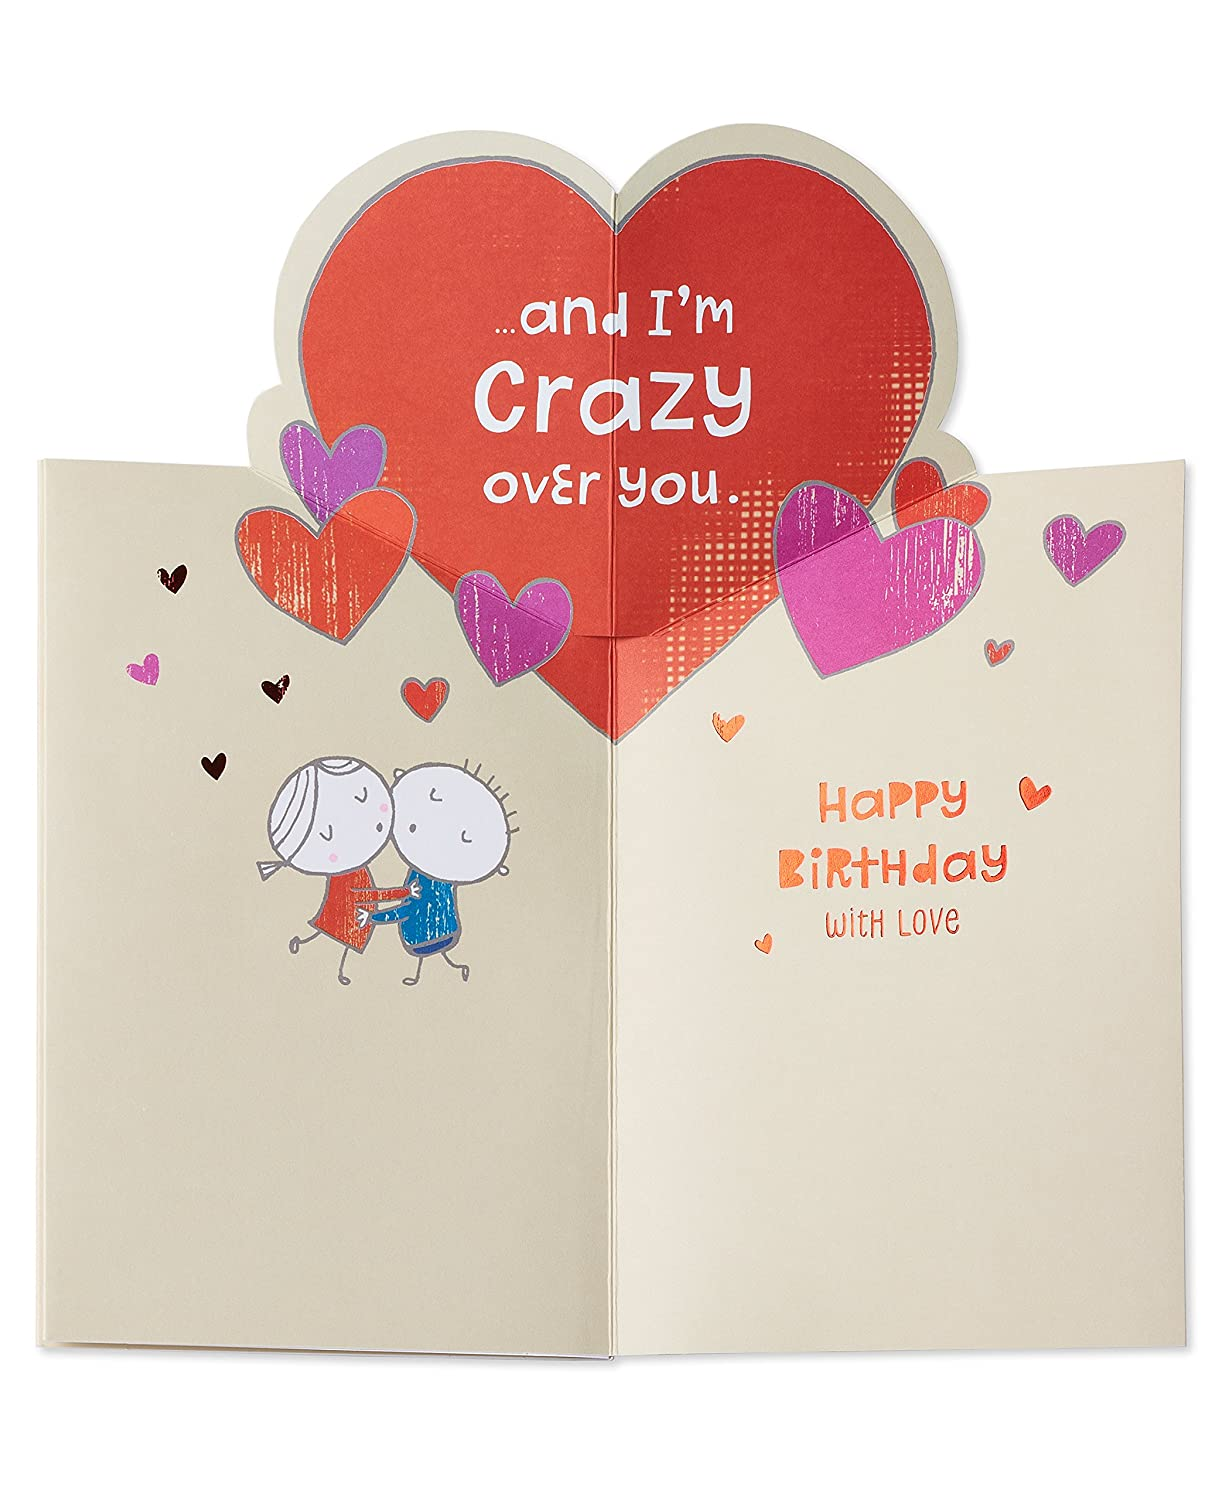 Amazon American Greetings Crazy Life Birthday Card For Husband